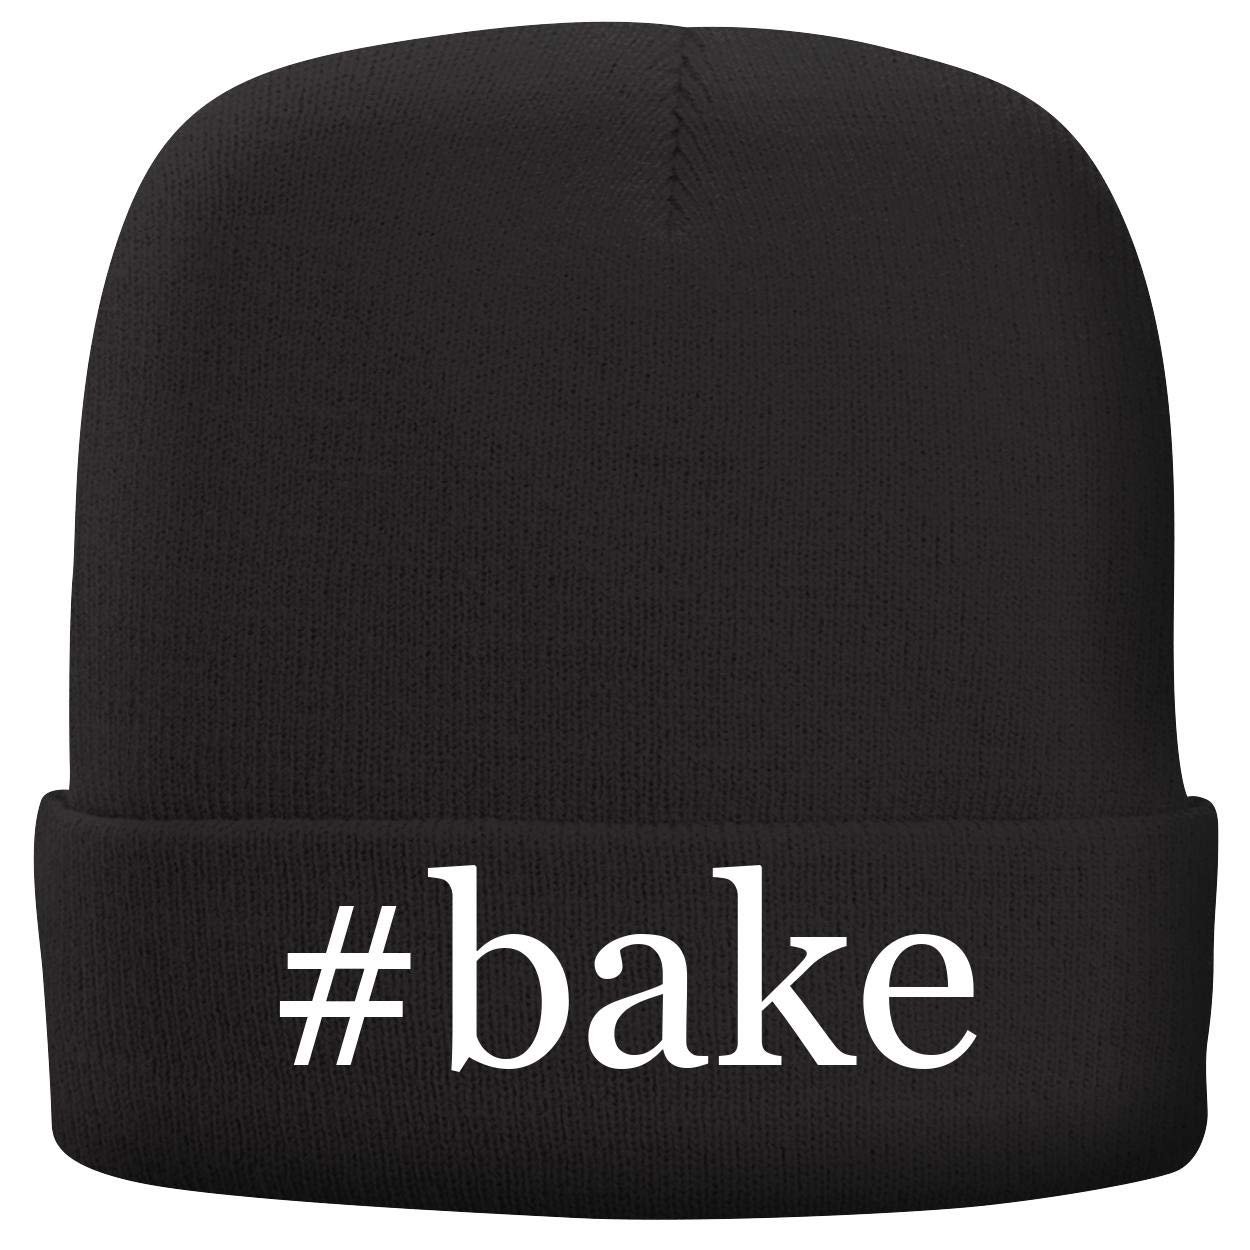 BH Cool Designs #Bake - Adult Comfortable Fleece Lined Beanie